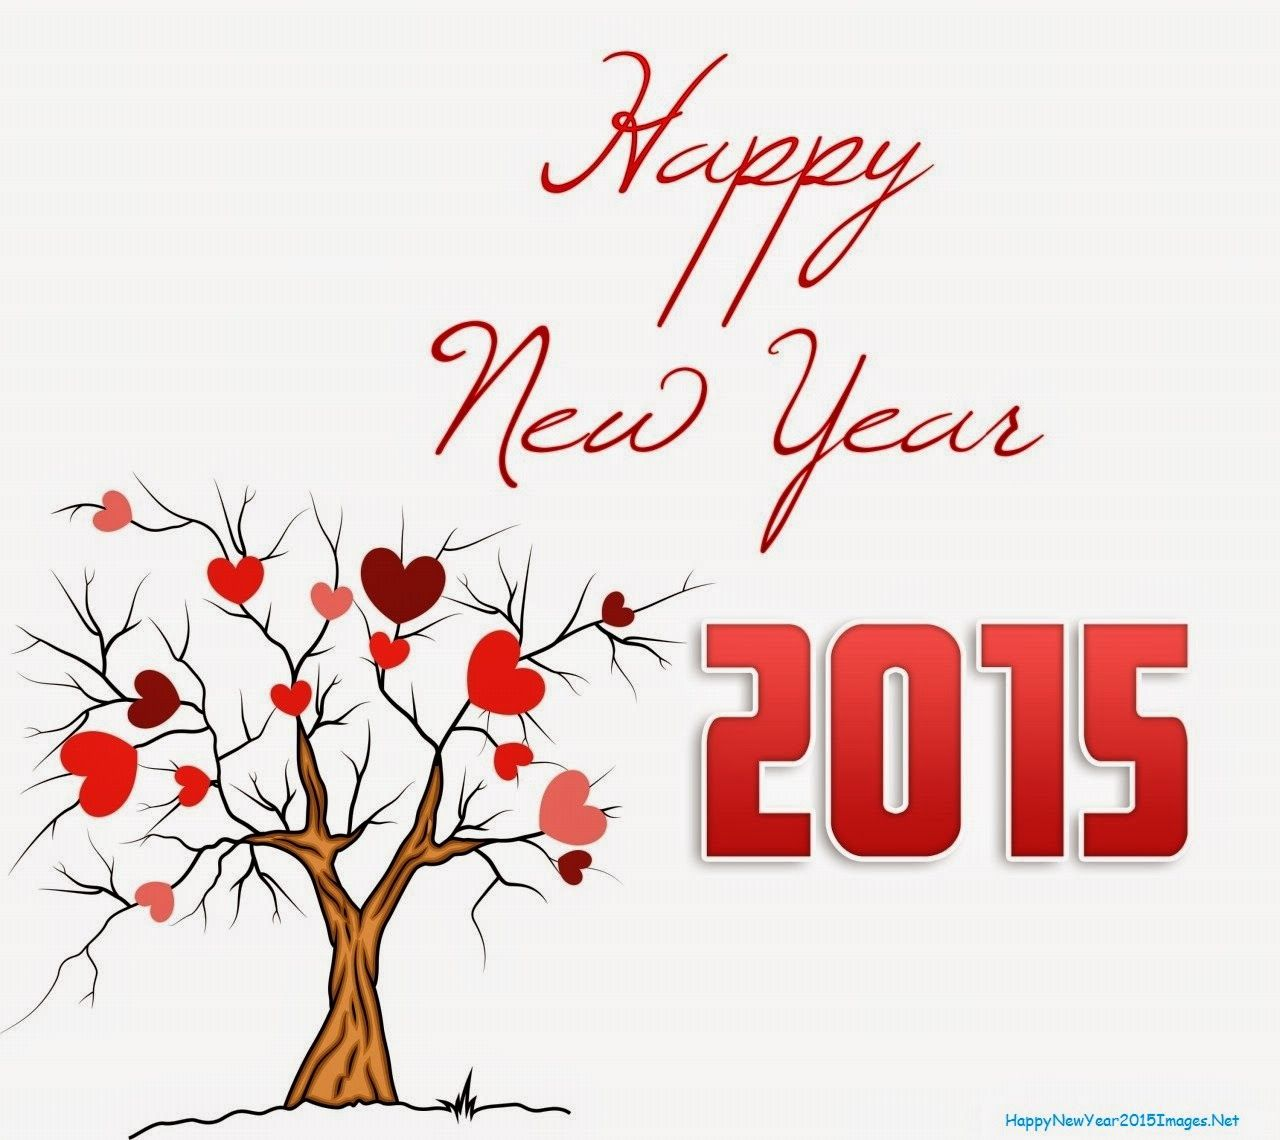 Happy New Year 2015 Happy New Year Pinterest Happy 2015 And